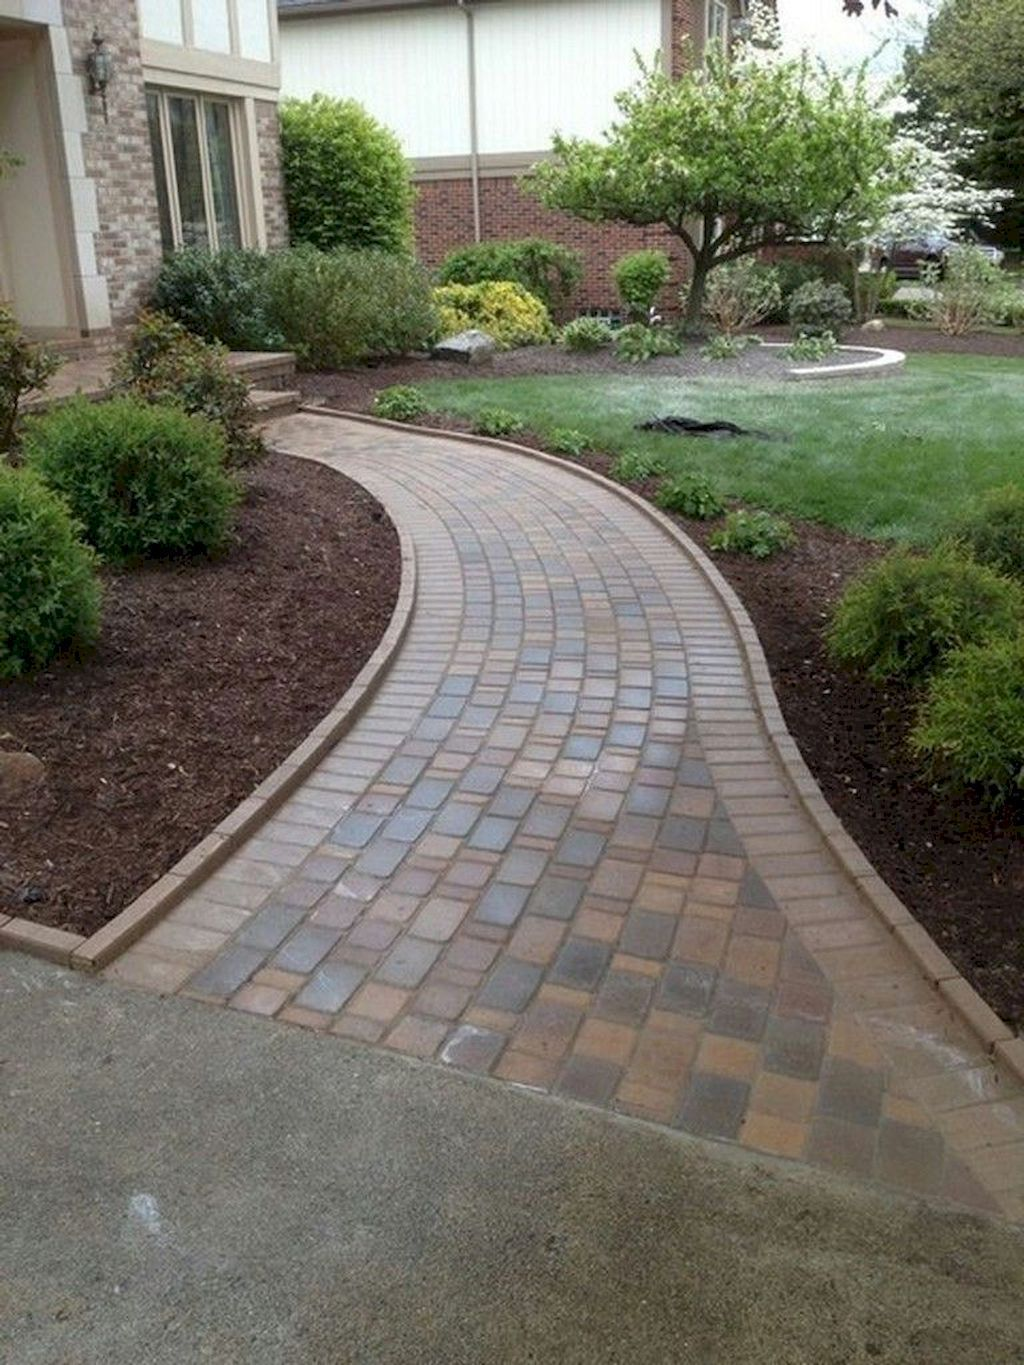 65 Stunning Front Yard Pathways Landscaping Ideas - homixover.com #walkwaystofrontdoor